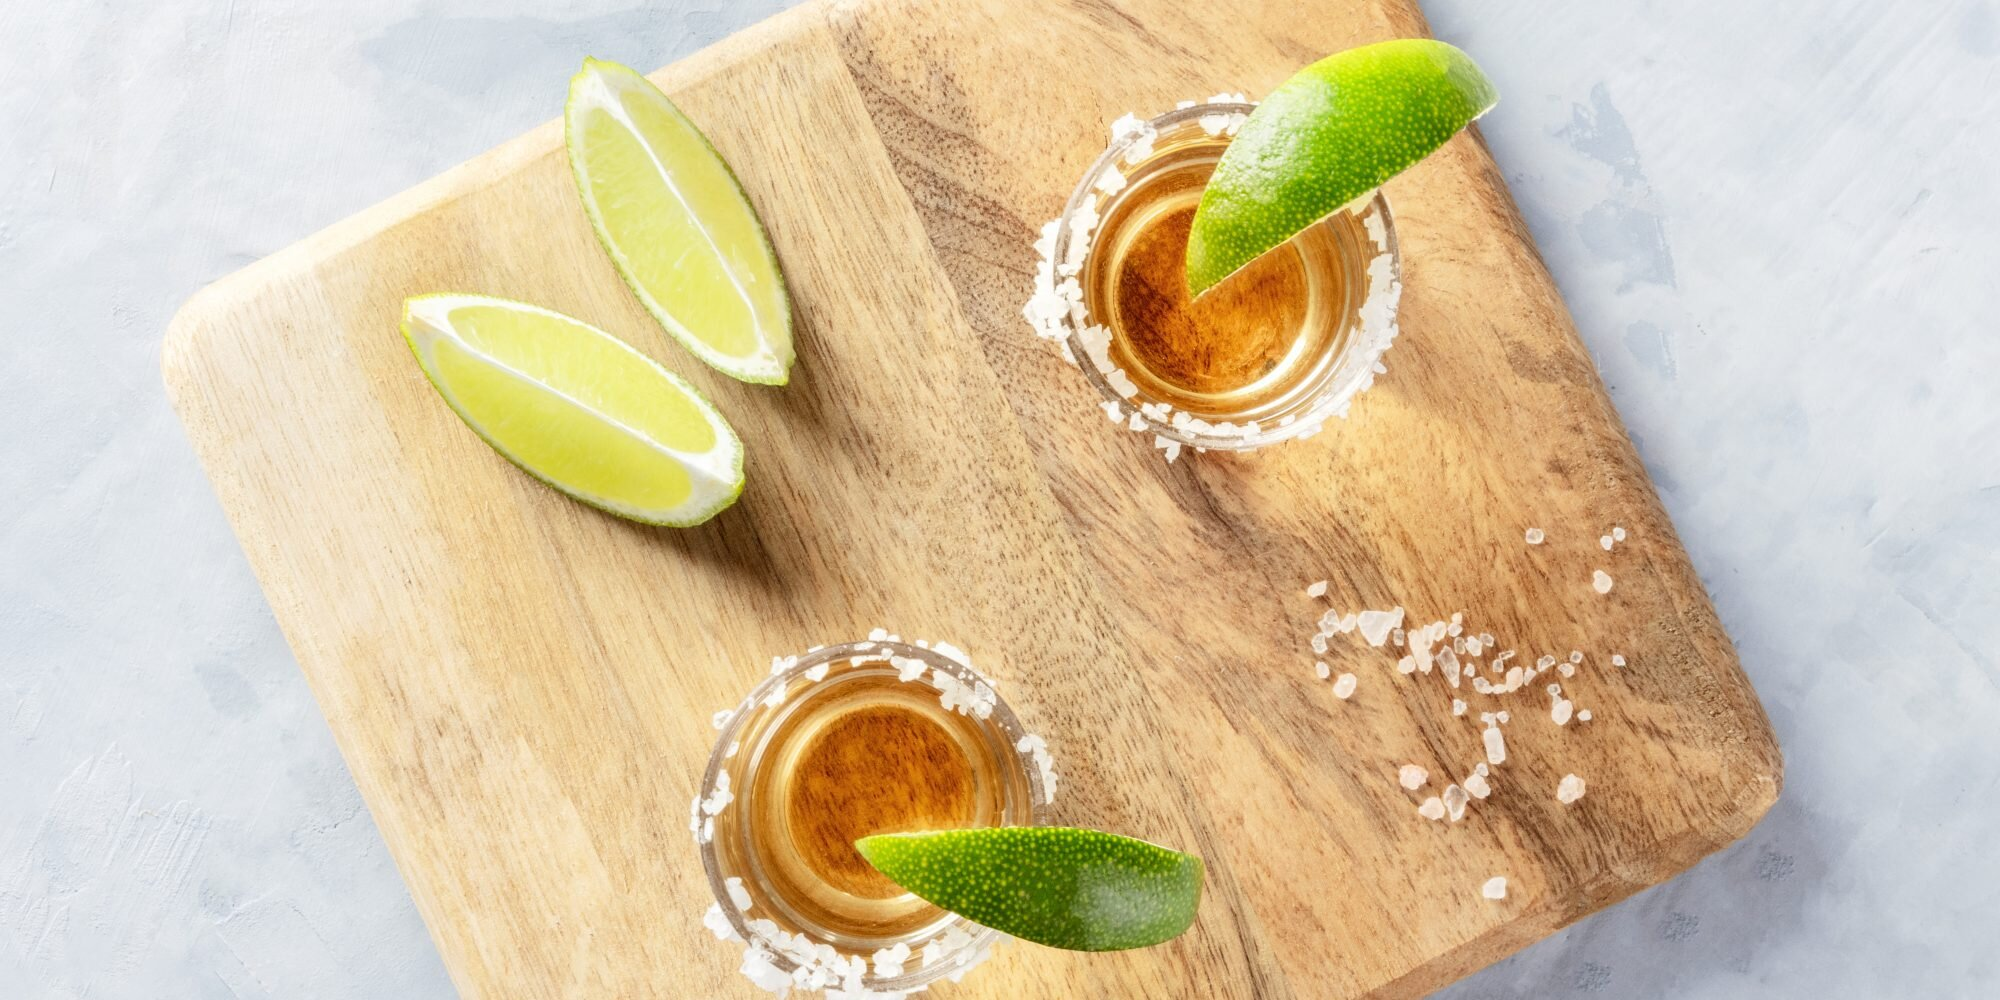 5 Craft Cocktail Trends to Spice Up Your Next At-Home Happy Hour